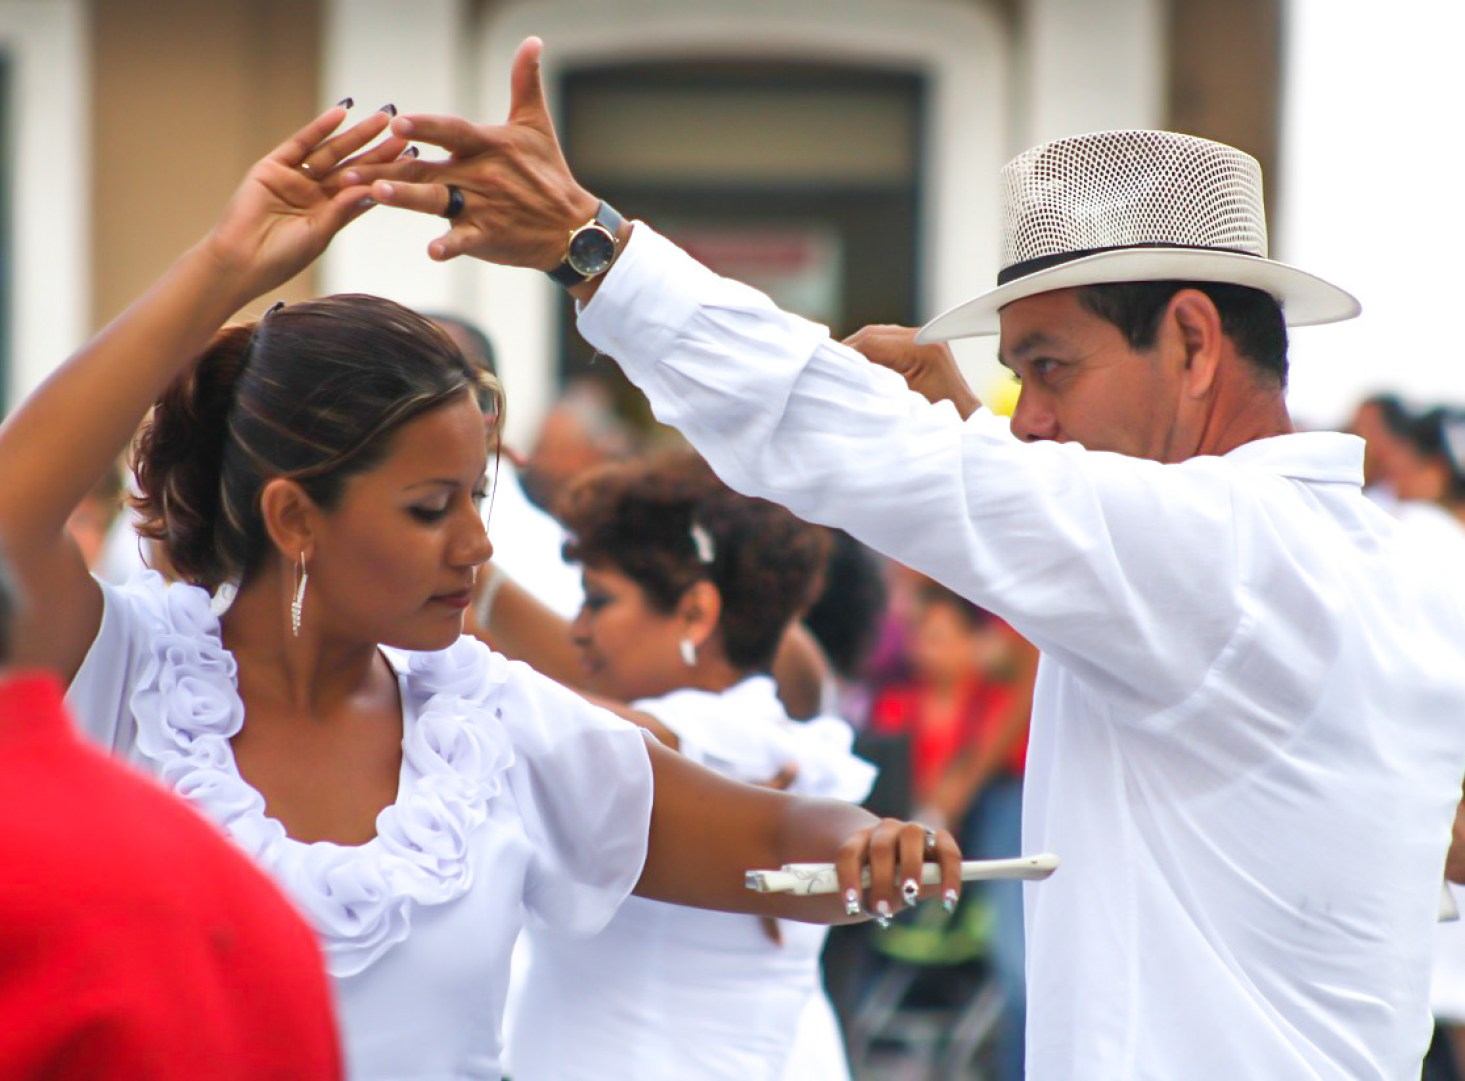 Danza in Plaza Mayor, Merida - Messico